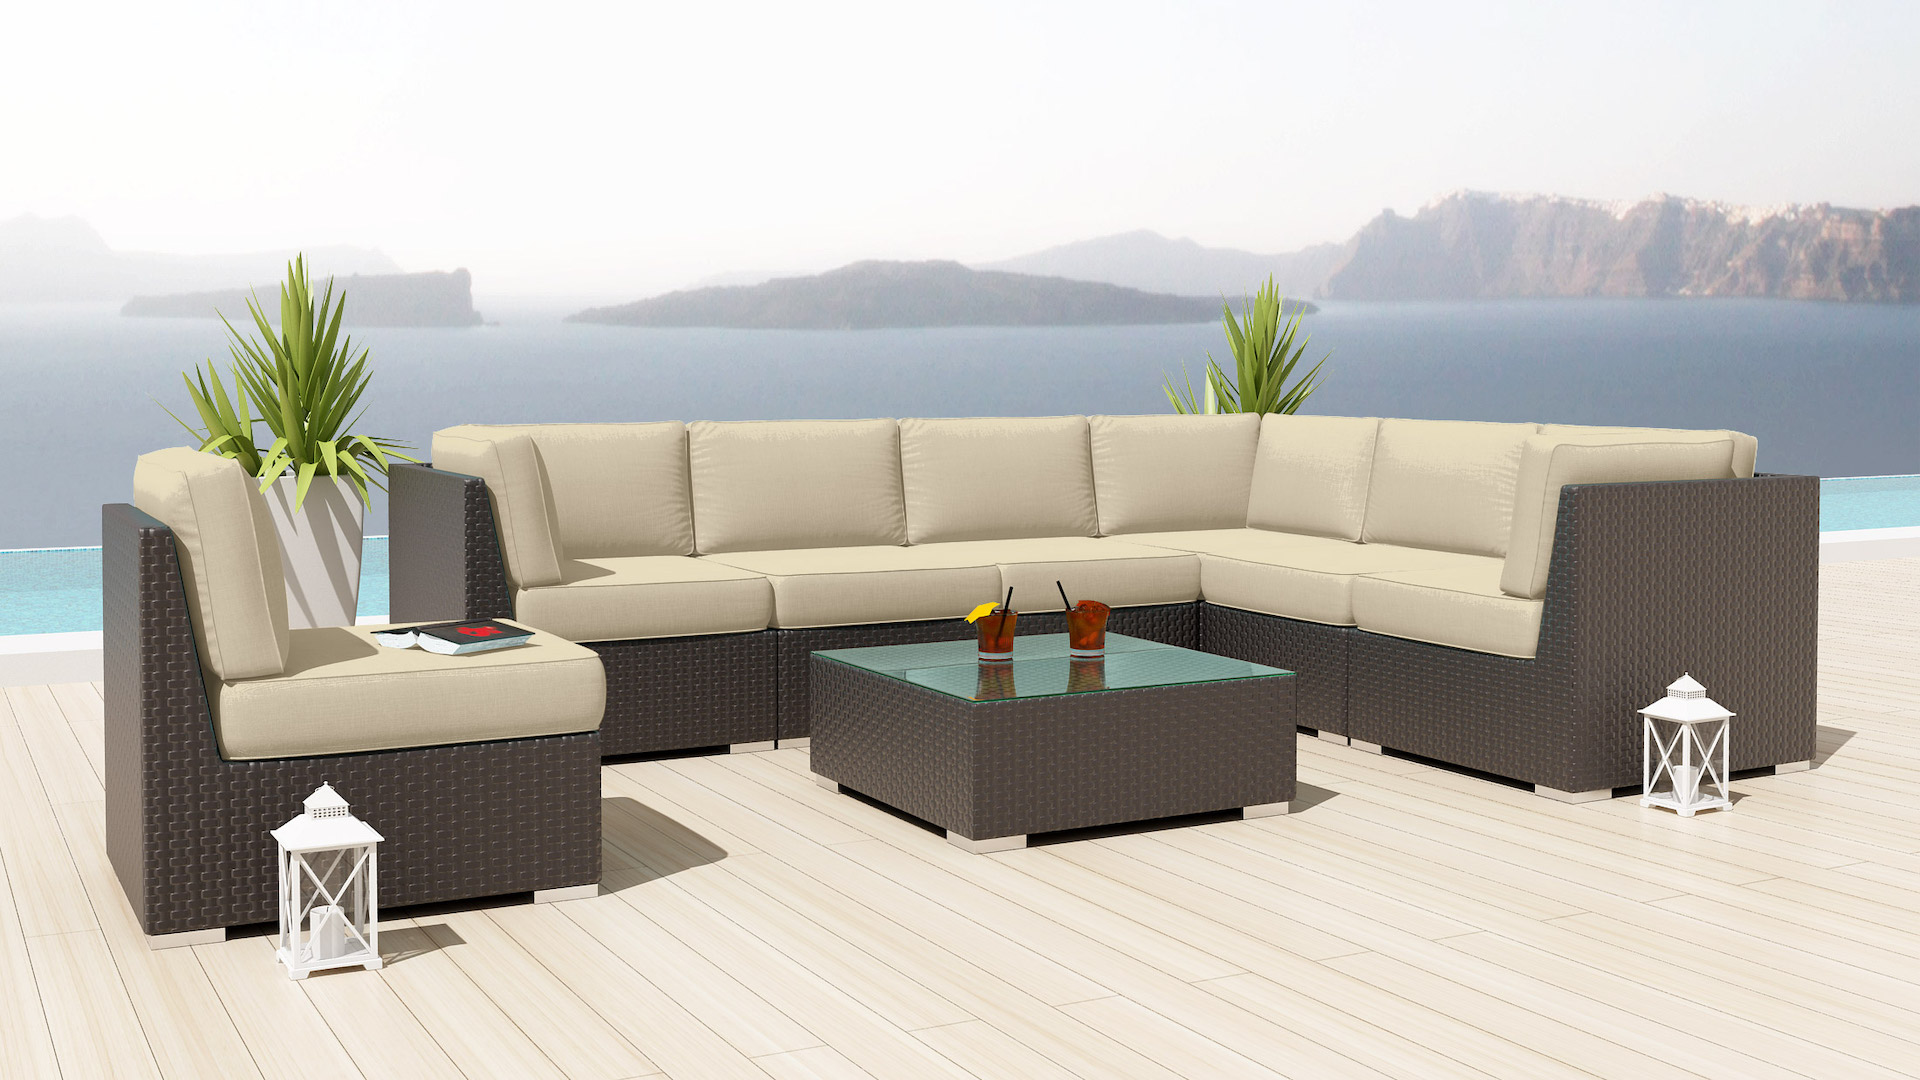 highest quality patio furniture at the lowest possible prices